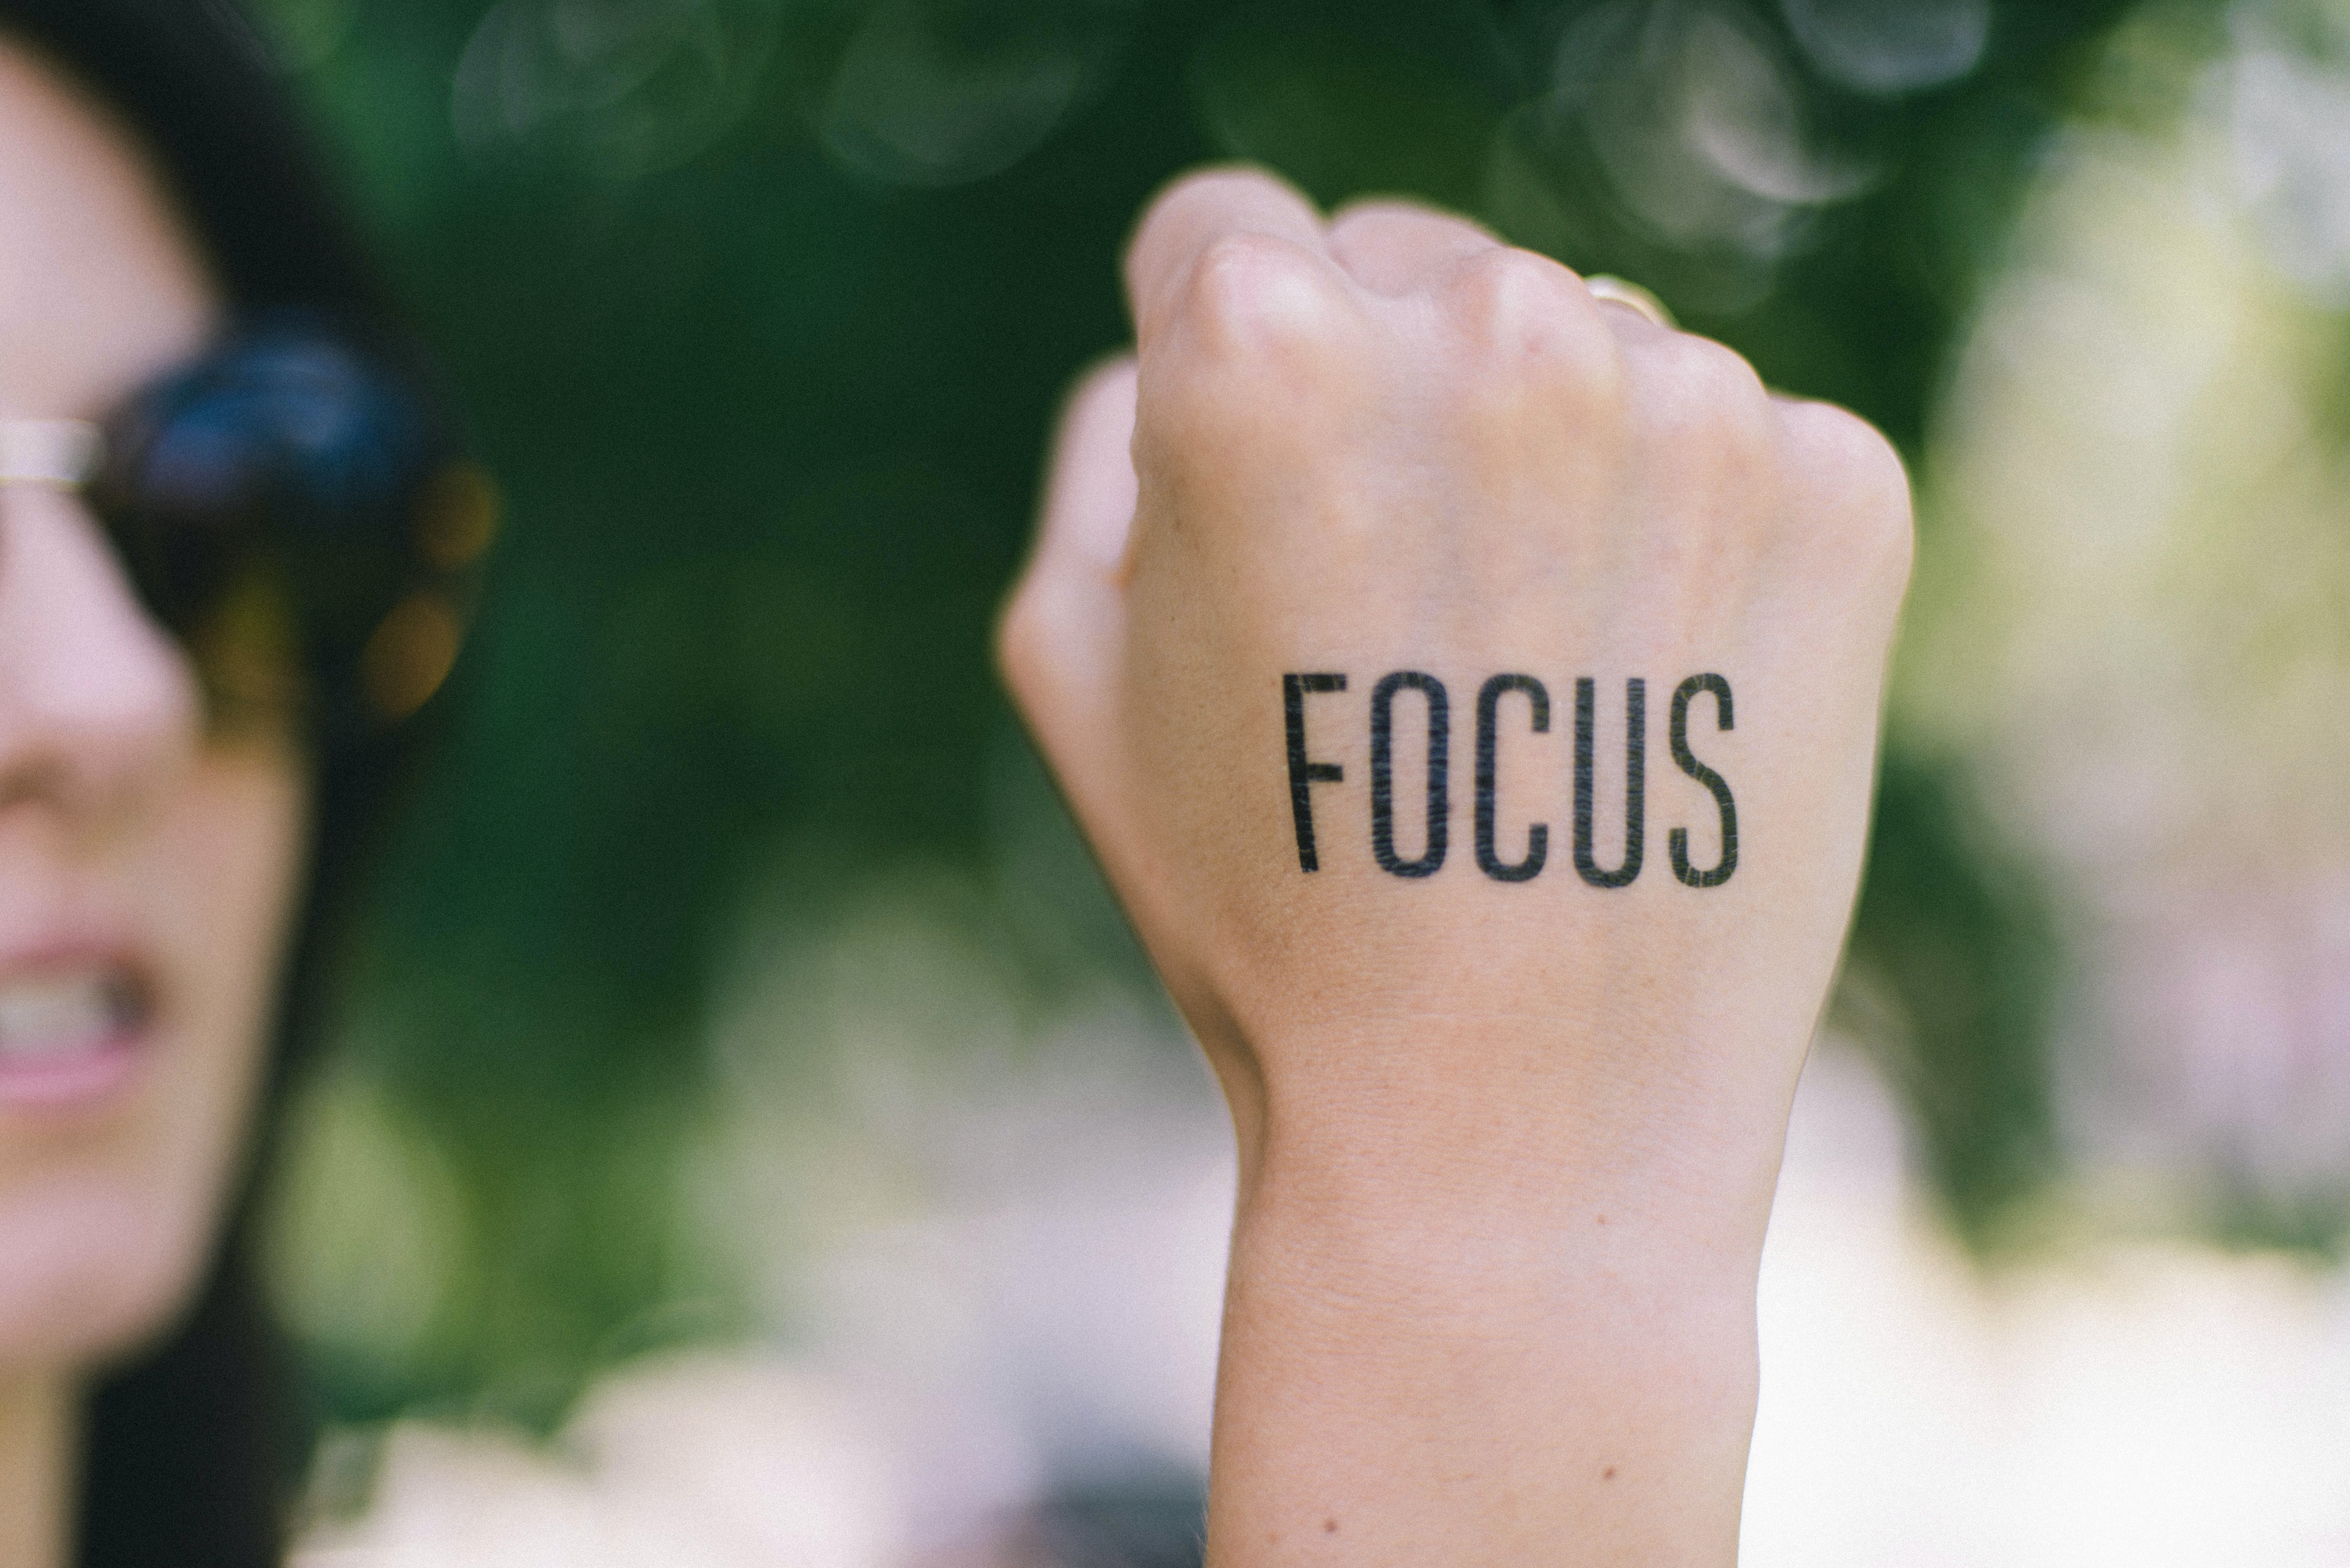 How to focus your wandering brain